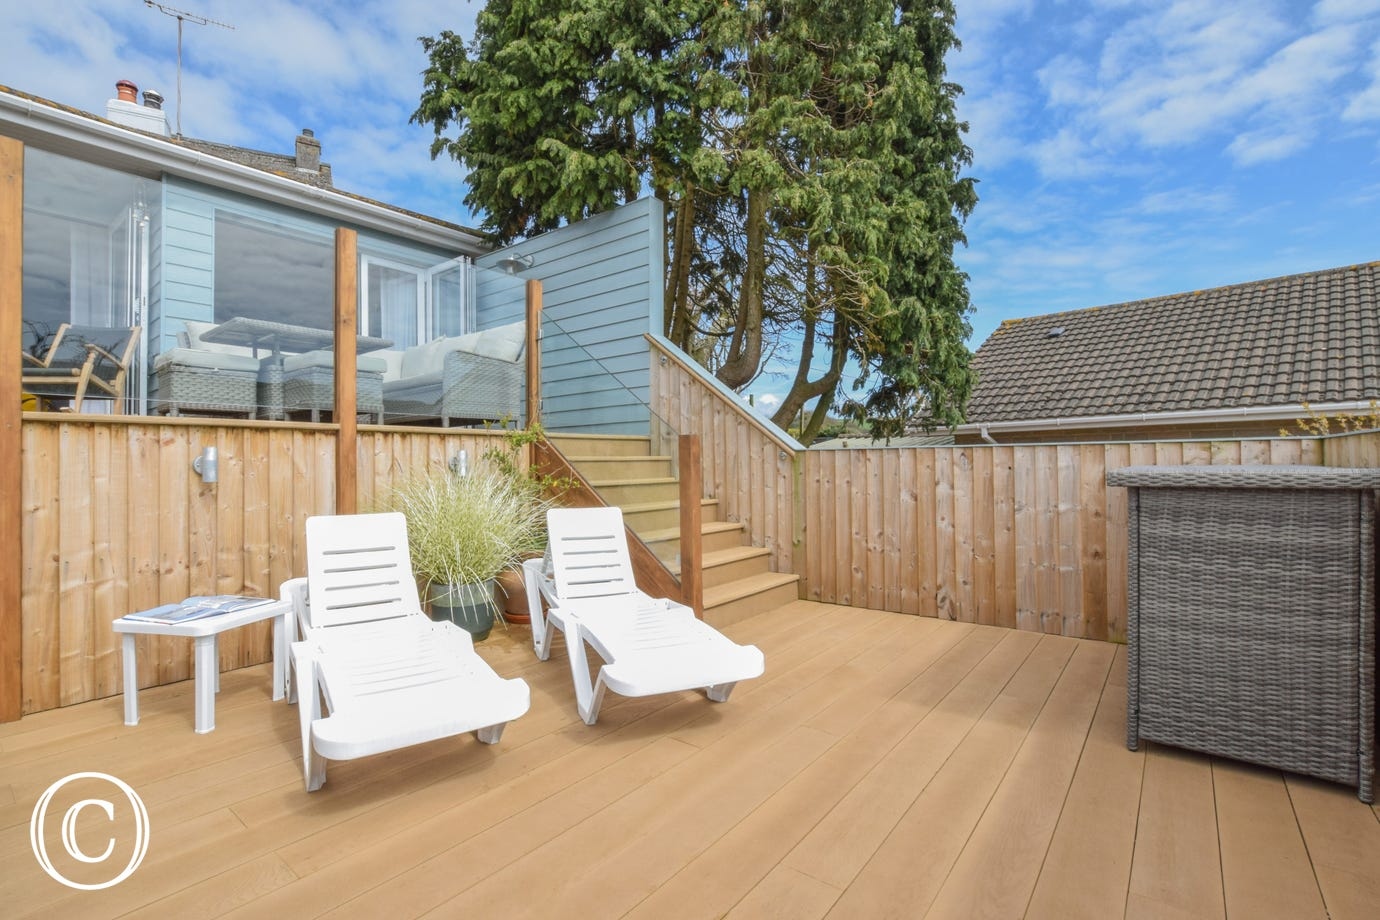 Decking area with sun loungers, great for a BBQ and relaxing in the evening